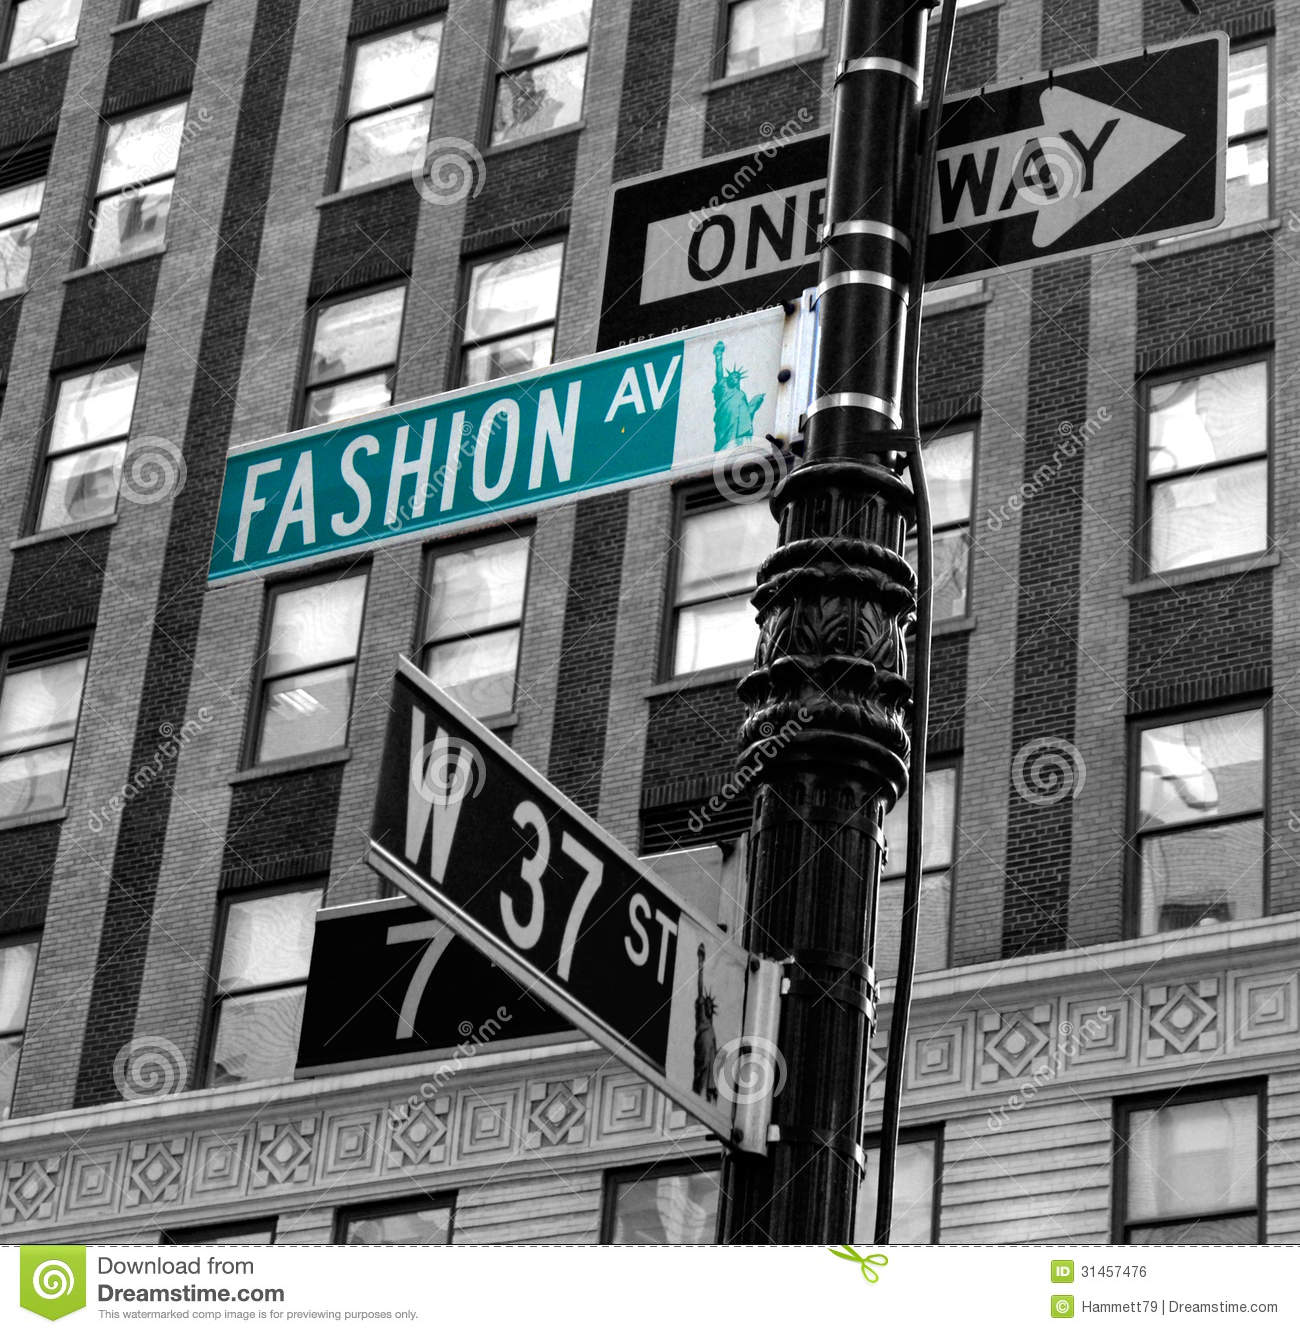 New York Developers To Build Suburban Style Mall In The: Fashion Avenue Royalty Free Stock Image